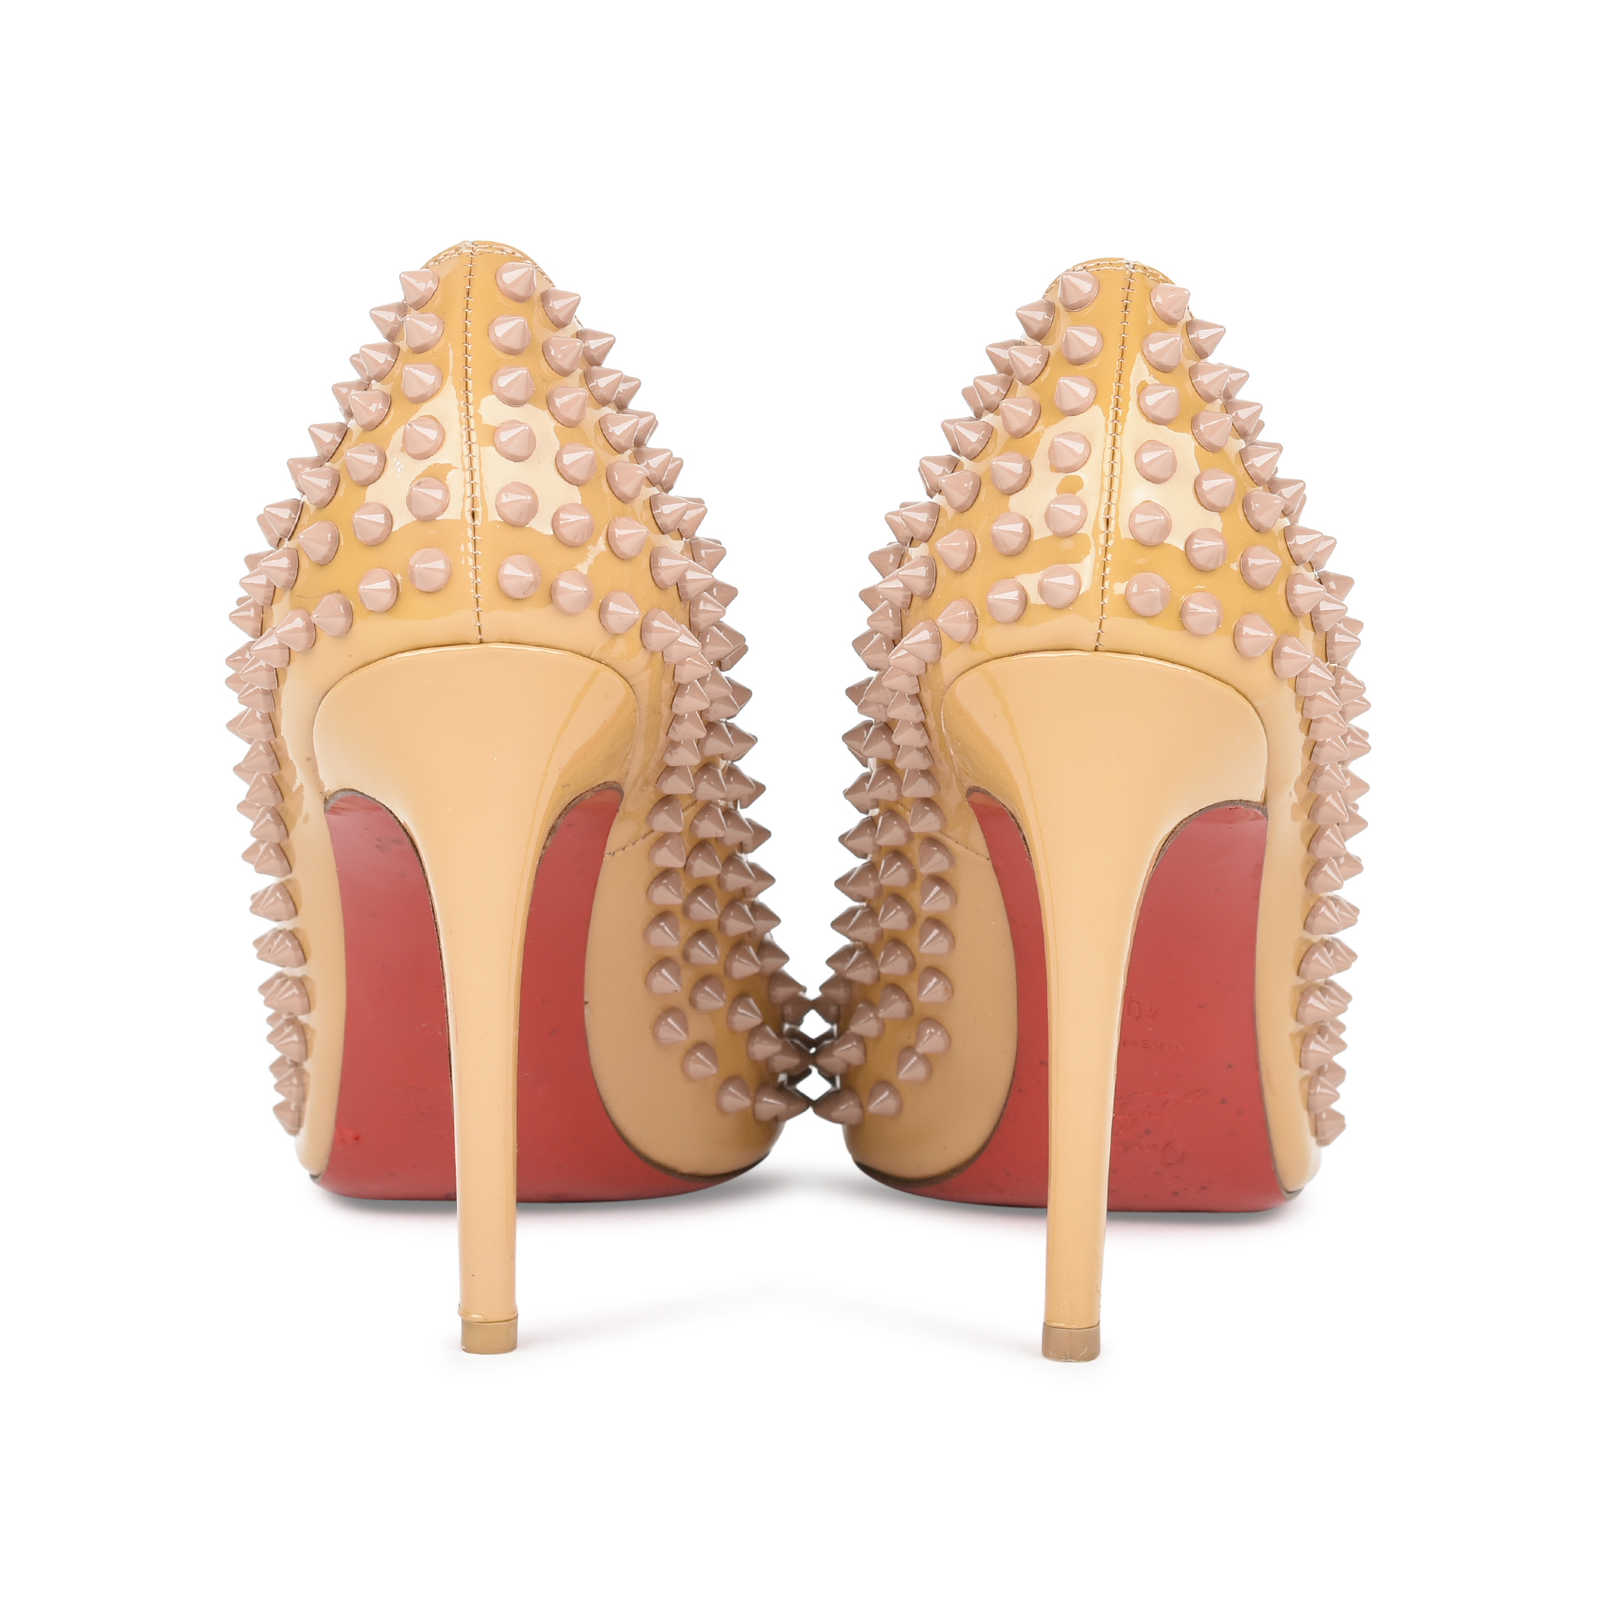 3dbffc81f9fd ... Authentic Second Hand Christian Louboutin Pigalle Spike Pumps  (PSS-532-00002) ...